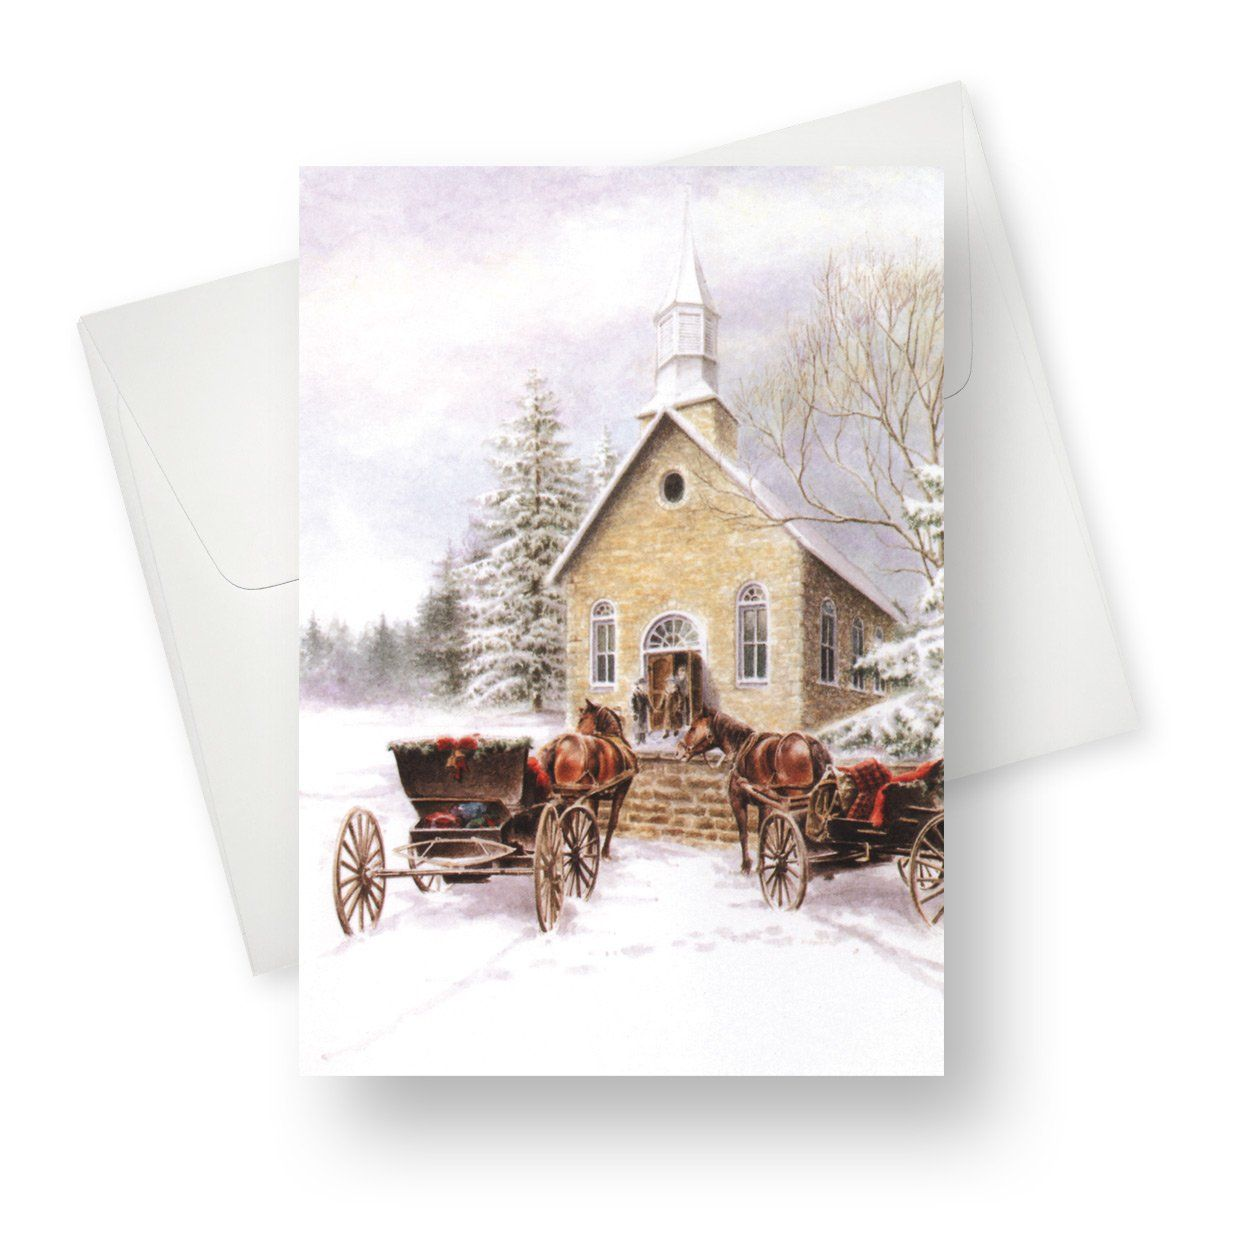 'Small Town Christmas' Christmas Card - Northern Cards